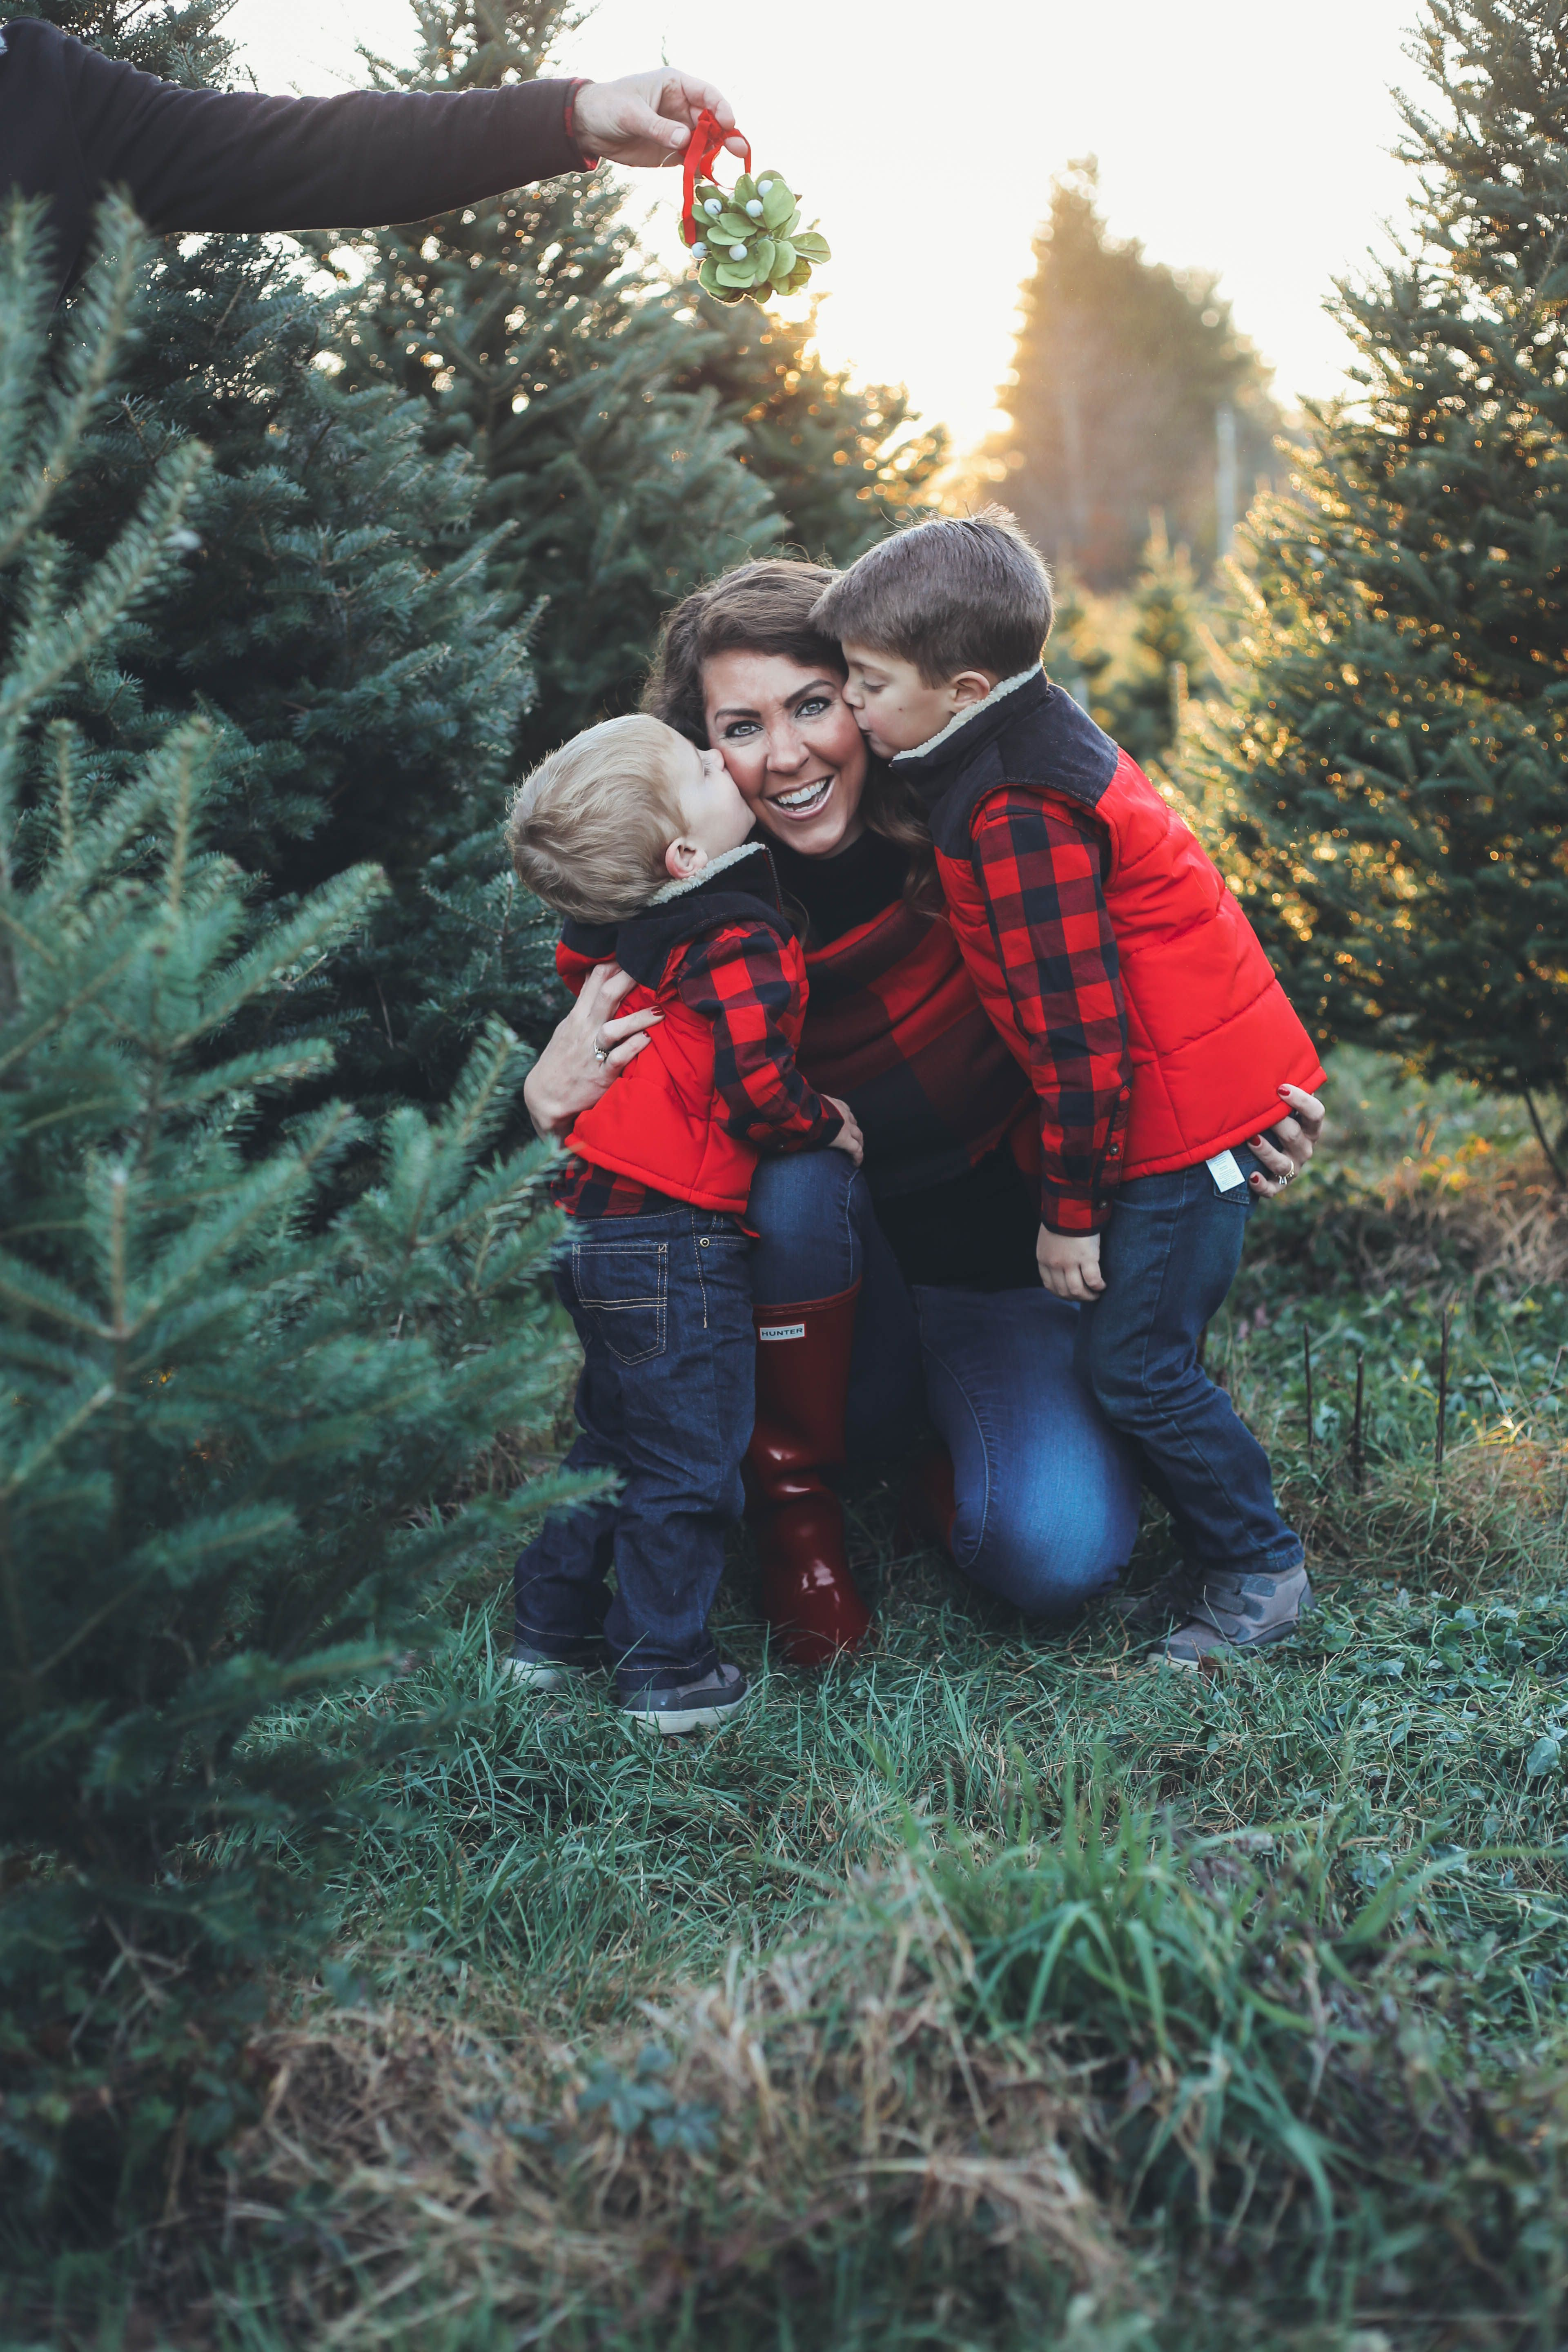 Merry Christmas Tree Farm Family Pictures From The Family Family Christmas Pictures Christmas Tree Farm Photos Black Christmas Trees